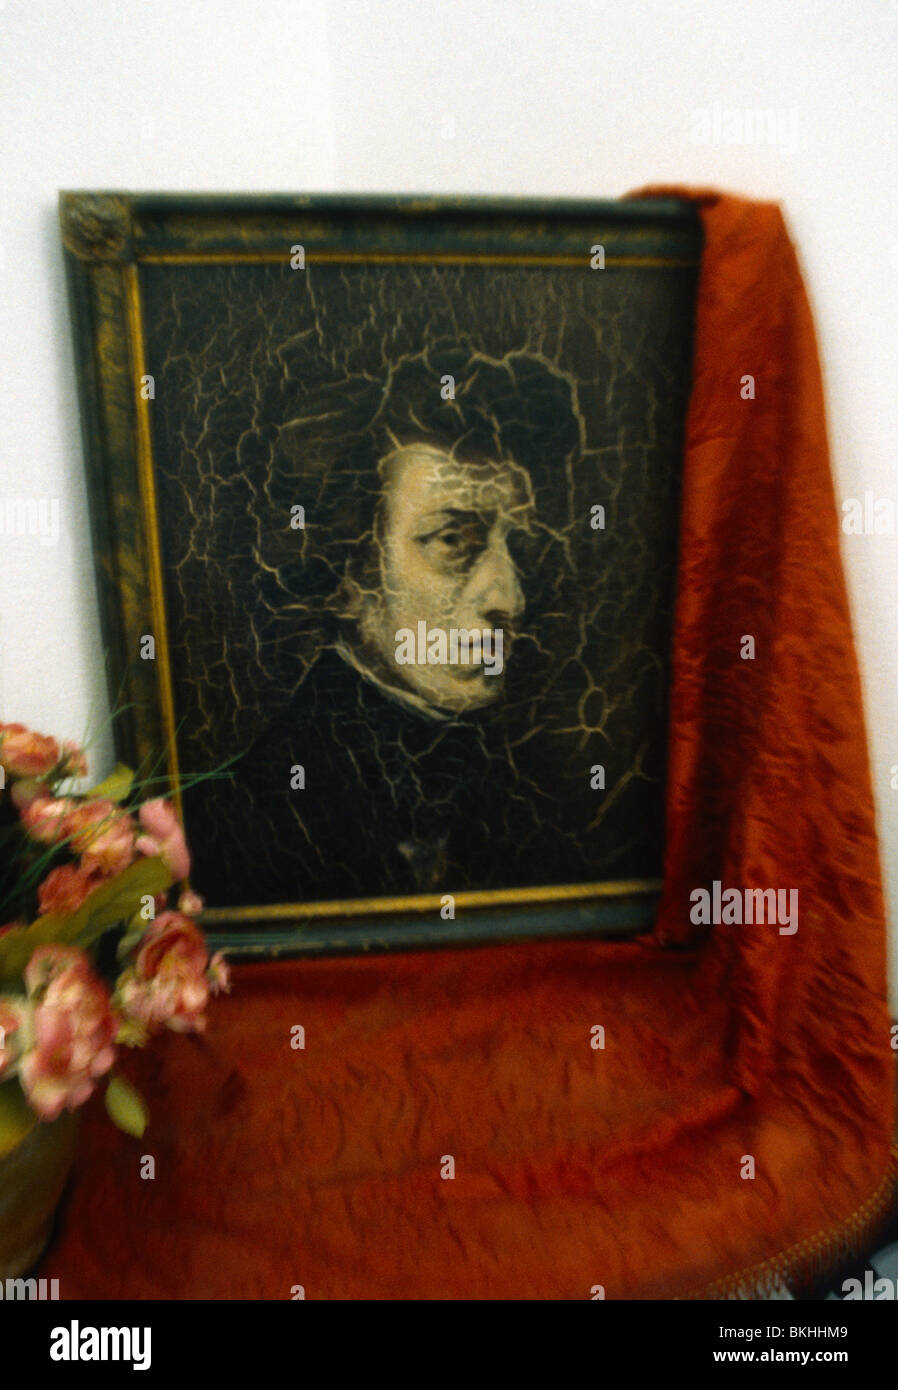 Majorca Balearic Islands Spain Valldemossa Portrait Of Chopin In Museo Celda Chopin - Stock Image